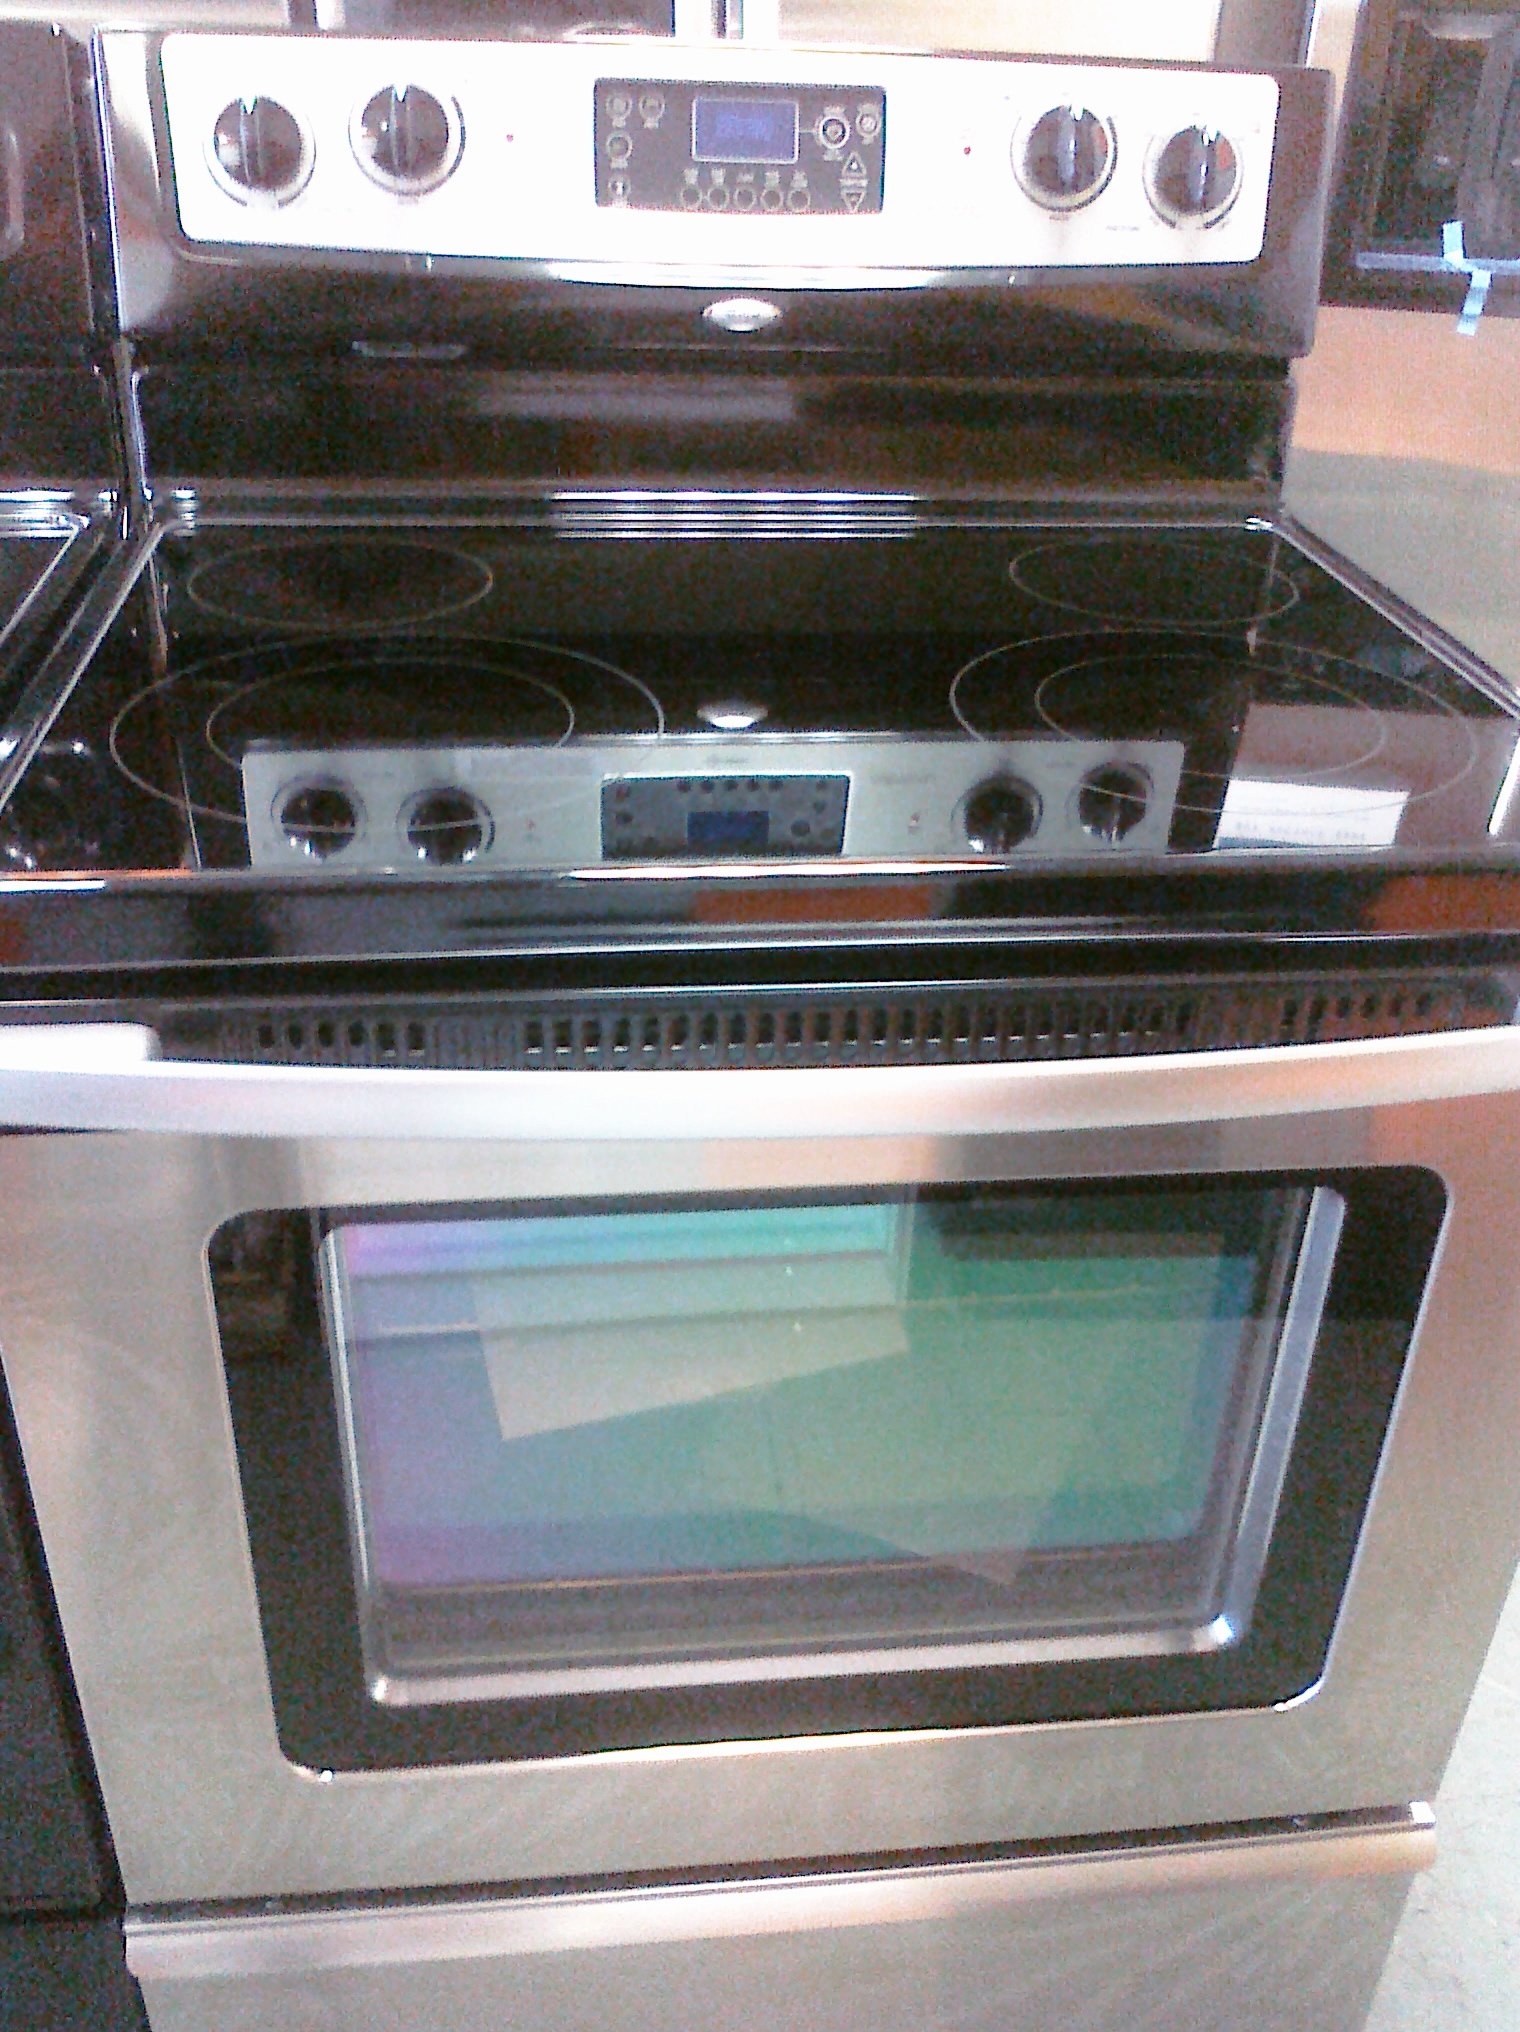 9 Whirlpool Wfe364lvs 30 Inch Electric Self Clean Free